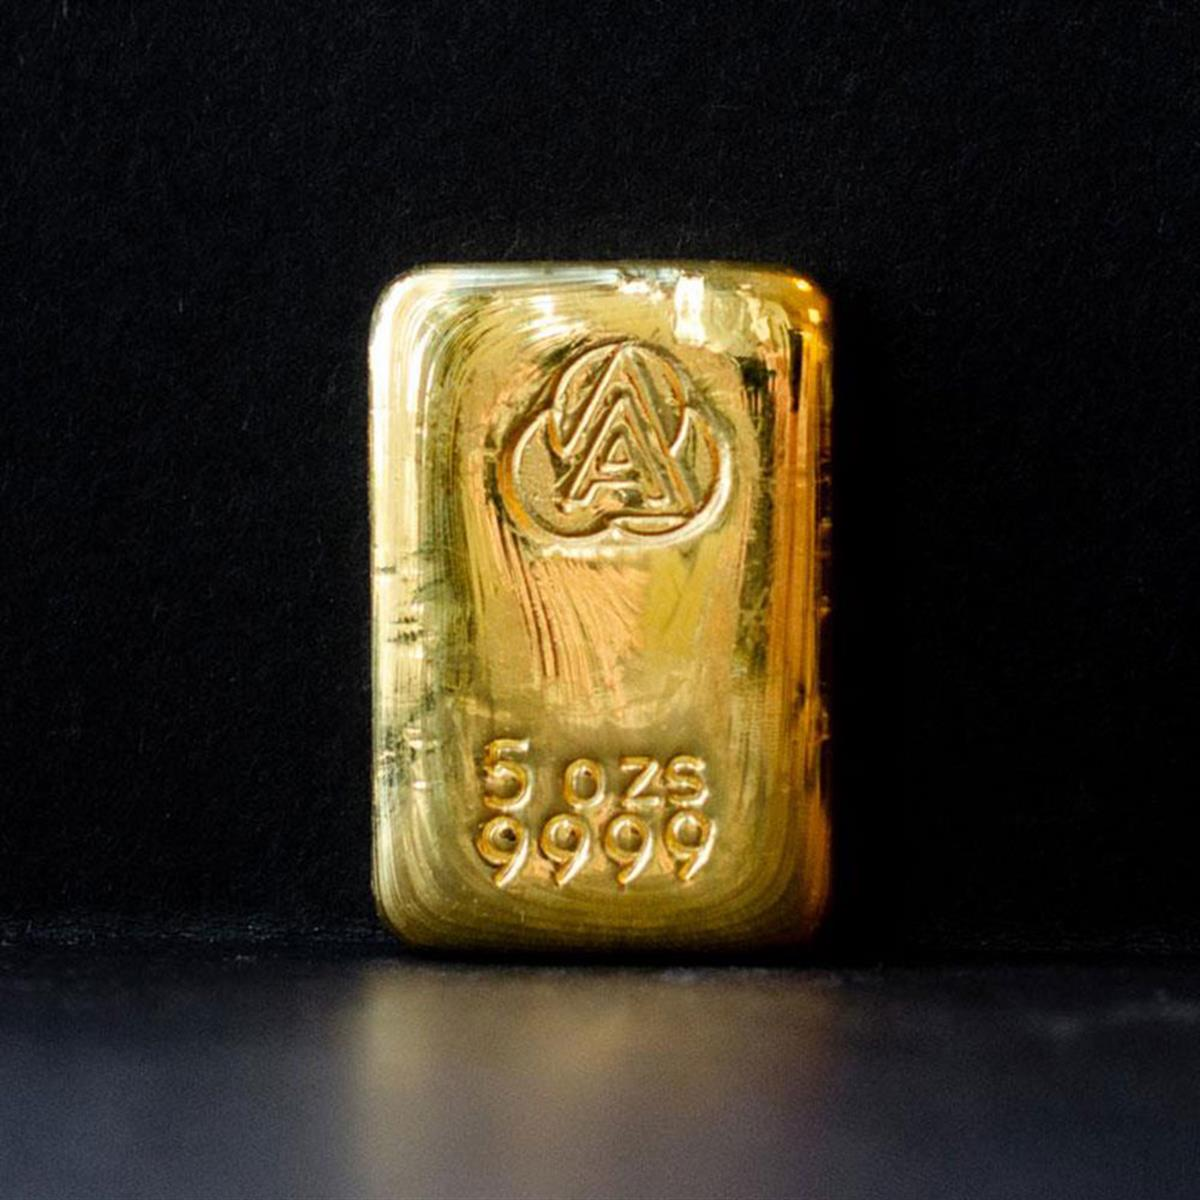 5 oz Ainslie Gold Bullion